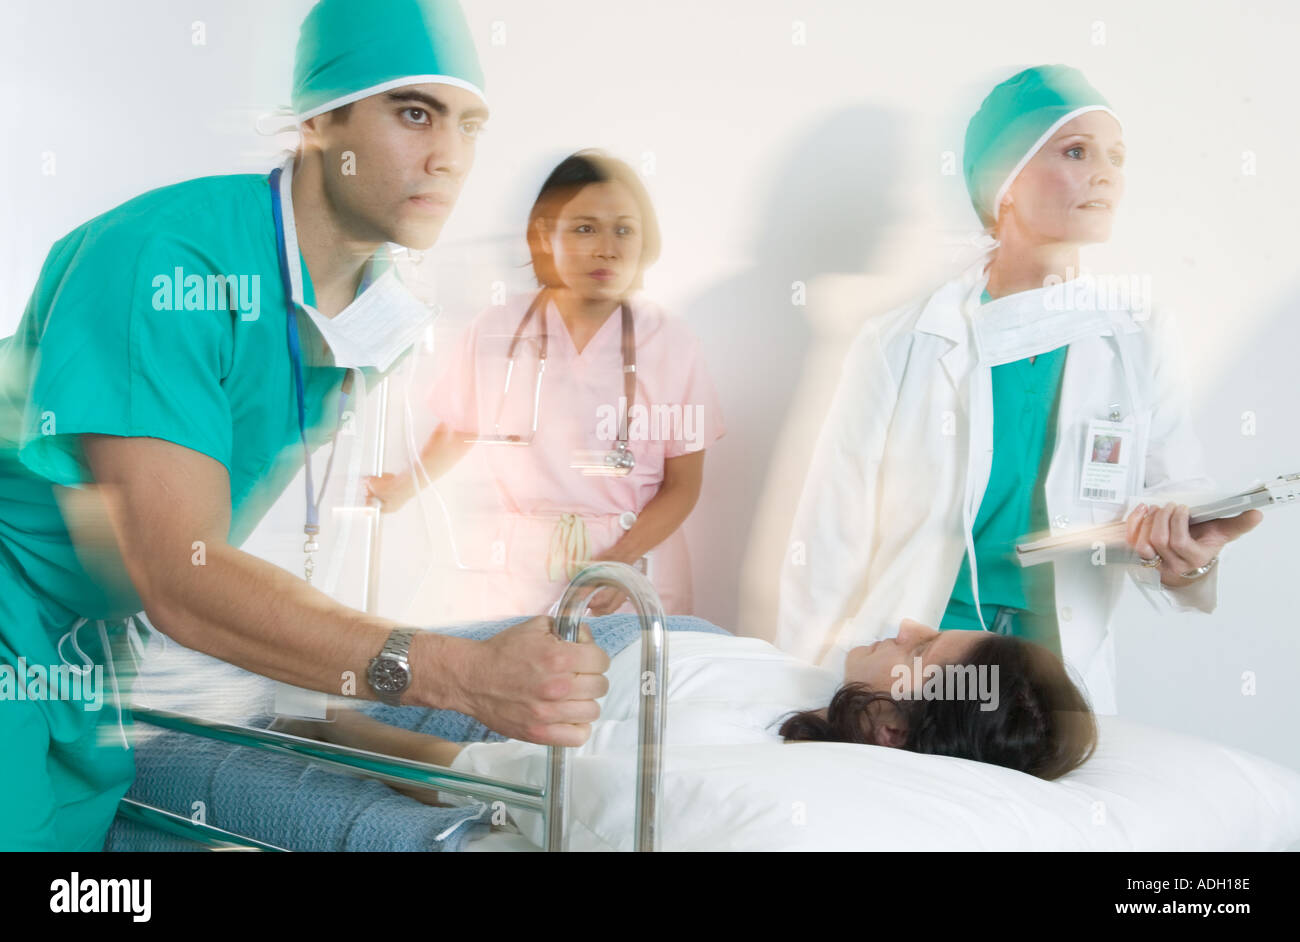 Medical staff responding to an emergency - Stock Image